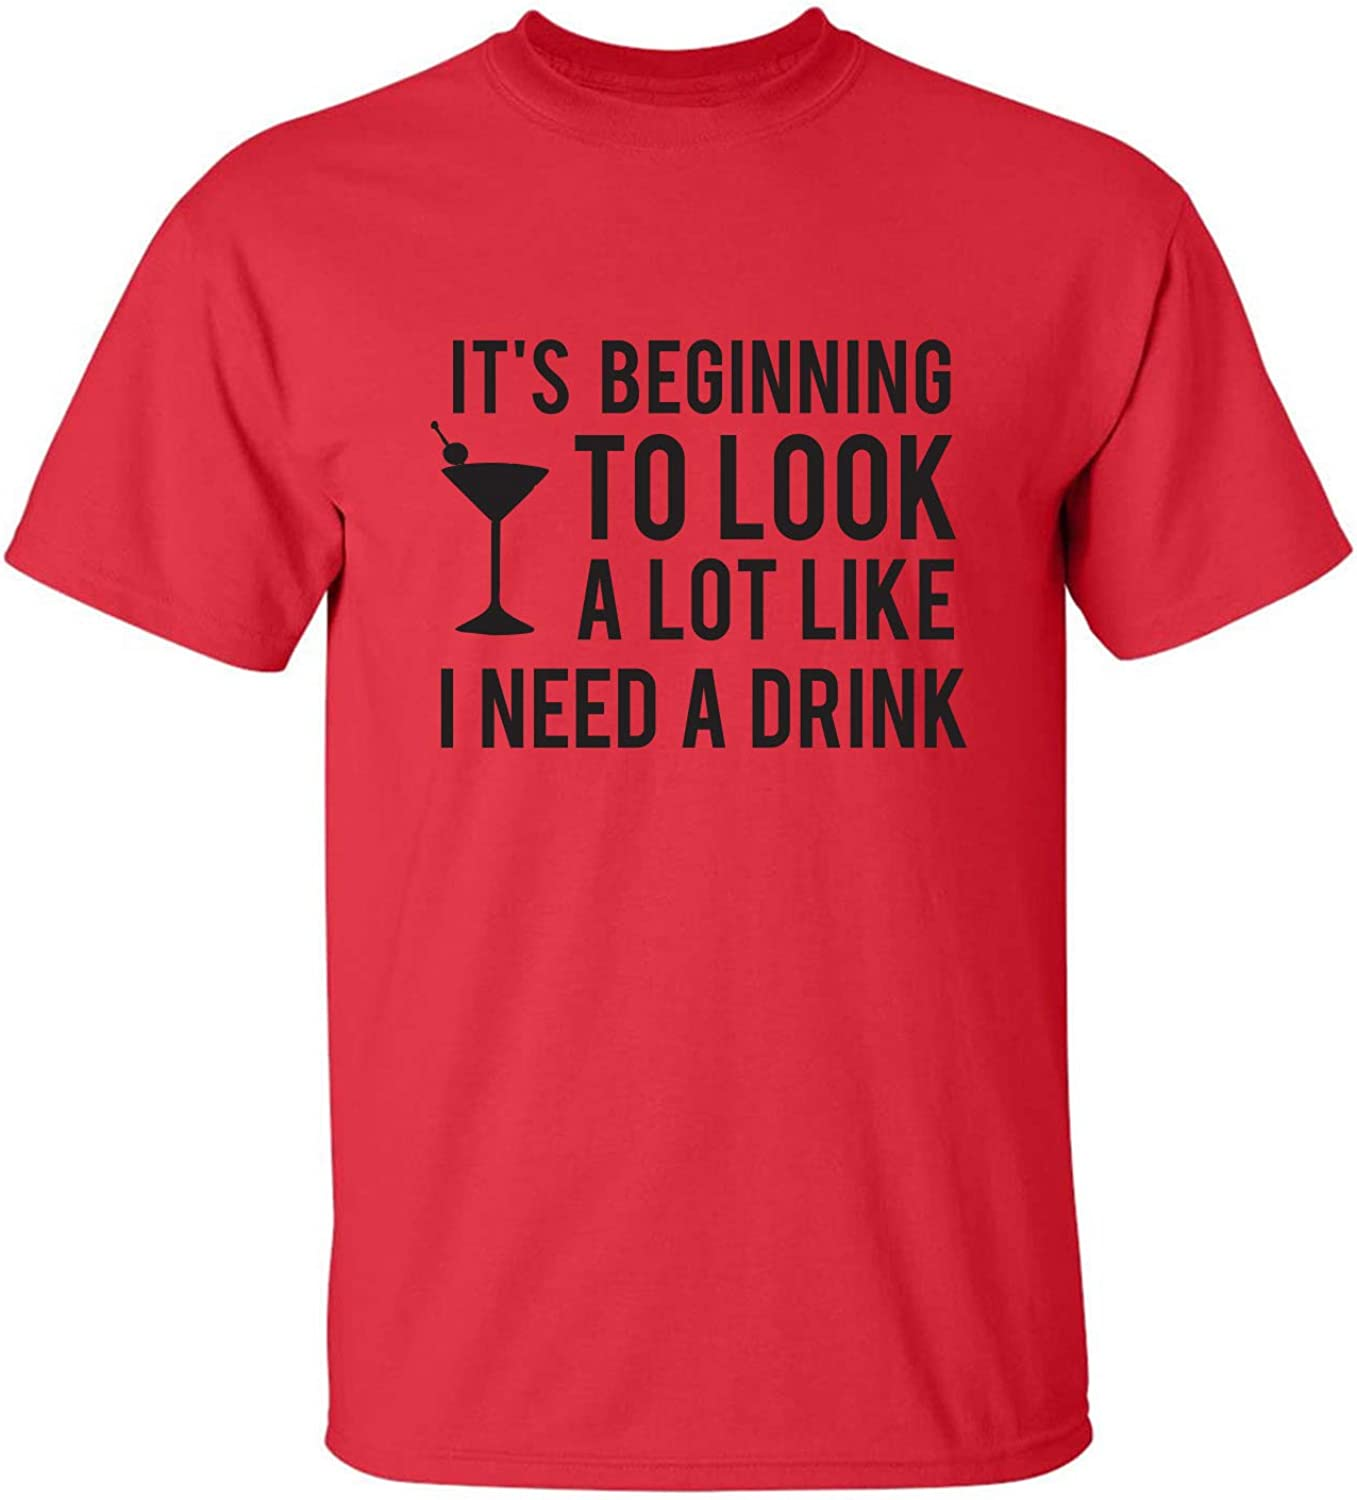 It's Beginning to Look A Lot Like Adult T-Shirt in Red - XXXX-Large